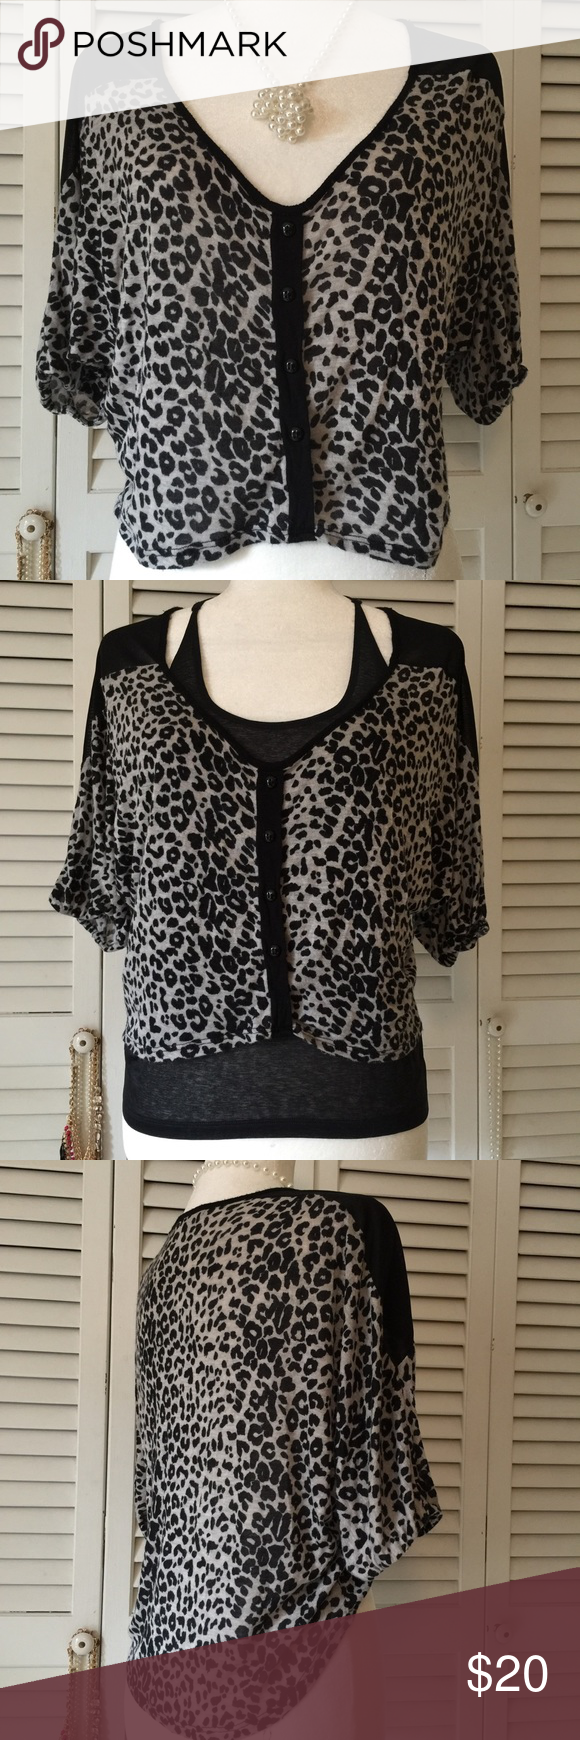 "Charlotte Russe Size Small High low top Animal print high low Top.  Poly/Spandex blend.  Loved but great condition.  Sleeves are 3/4 length. Front Measures approx 18"" and back 21"".  Sleeves are very loose and has some loose elastic on hem.  Can be worn on or off one shoulder.  So many ways to wear this.  One is shown in second photo.  I paired it with the Nike Razor back Tee also listed in my closet. Charlotte Russe Tops Crop Tops"